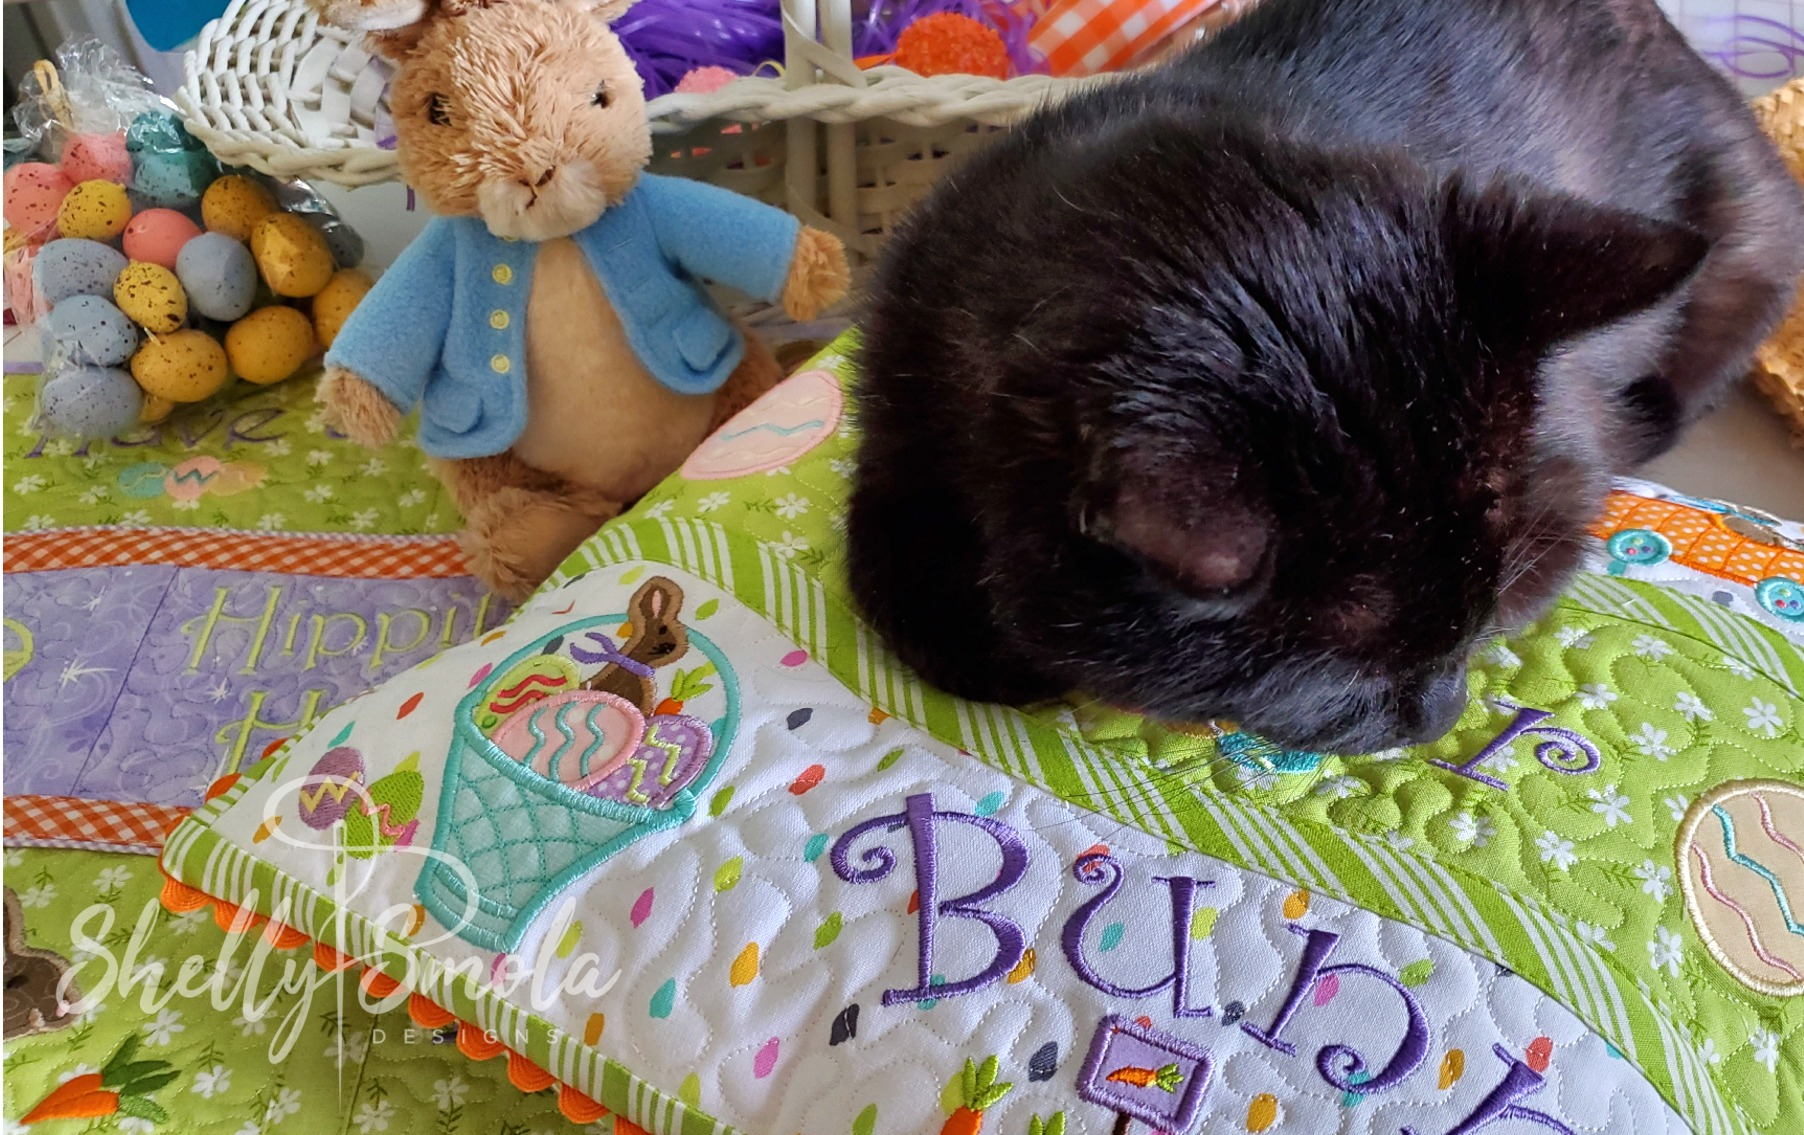 Bunny Kisses and Spooky the Cat by Shelly Smola Designs